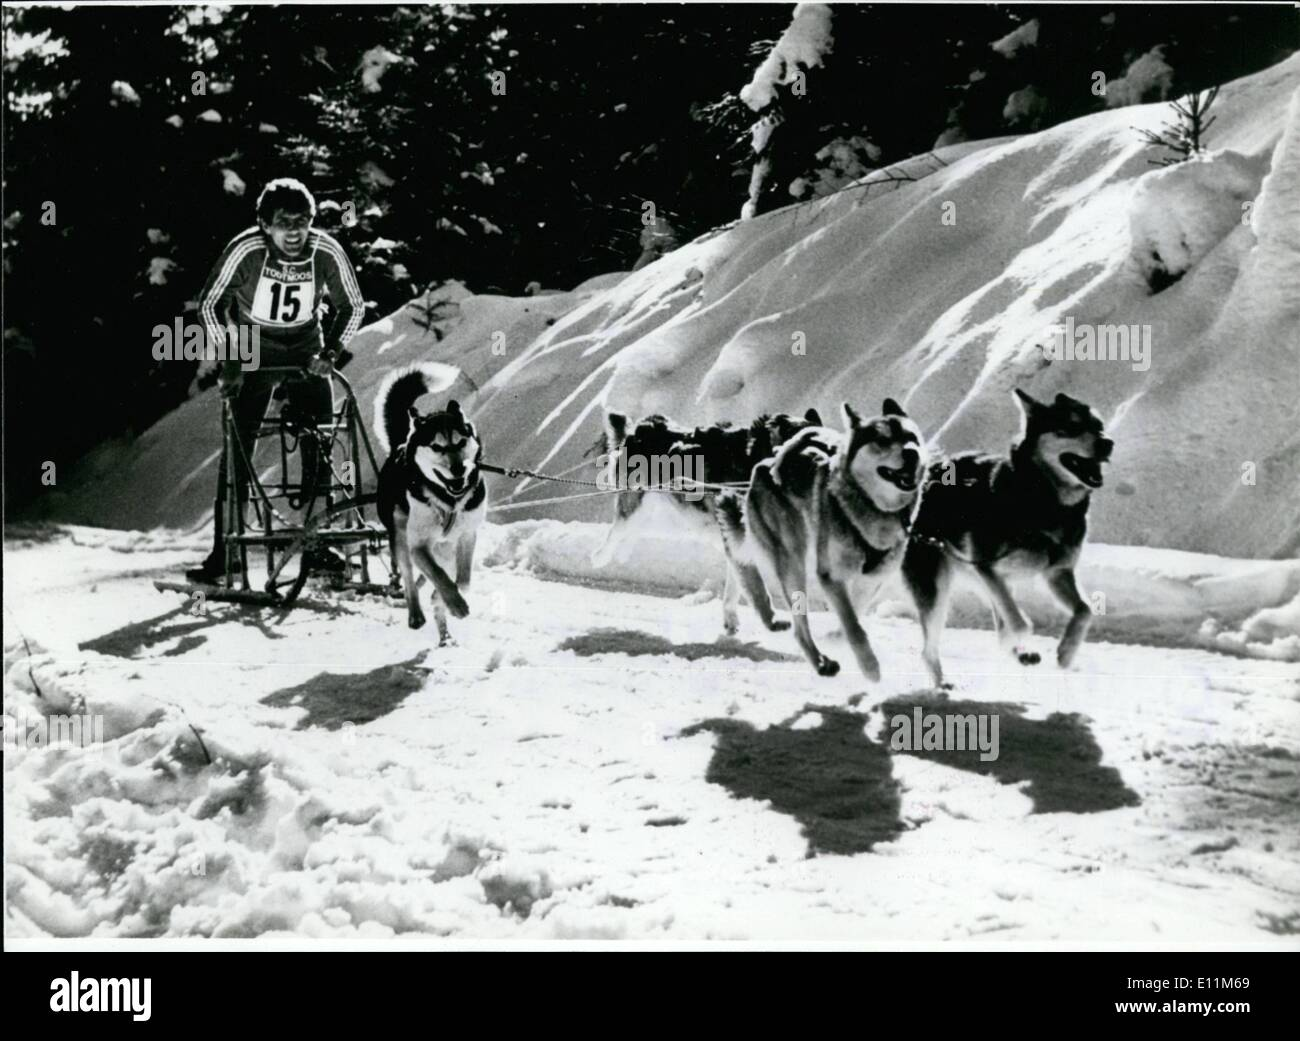 Jan. 26, 1979 - January 26th until 28th 1979; International German Mastership om Husky Race in Todtmoos/ West Germany: Huskies are not only to see at Greenland, but for instance also in the Black Forest/West Germany and specially in Todtmoos.On January 26th until 28th this year there will be here a great lot of Escimo dogs. The Reason: at these days there will take place here the International German mastership in Husky race. More than 130 sledges are expected to the final races, among them 72 teams from foreign countries - Stock Image